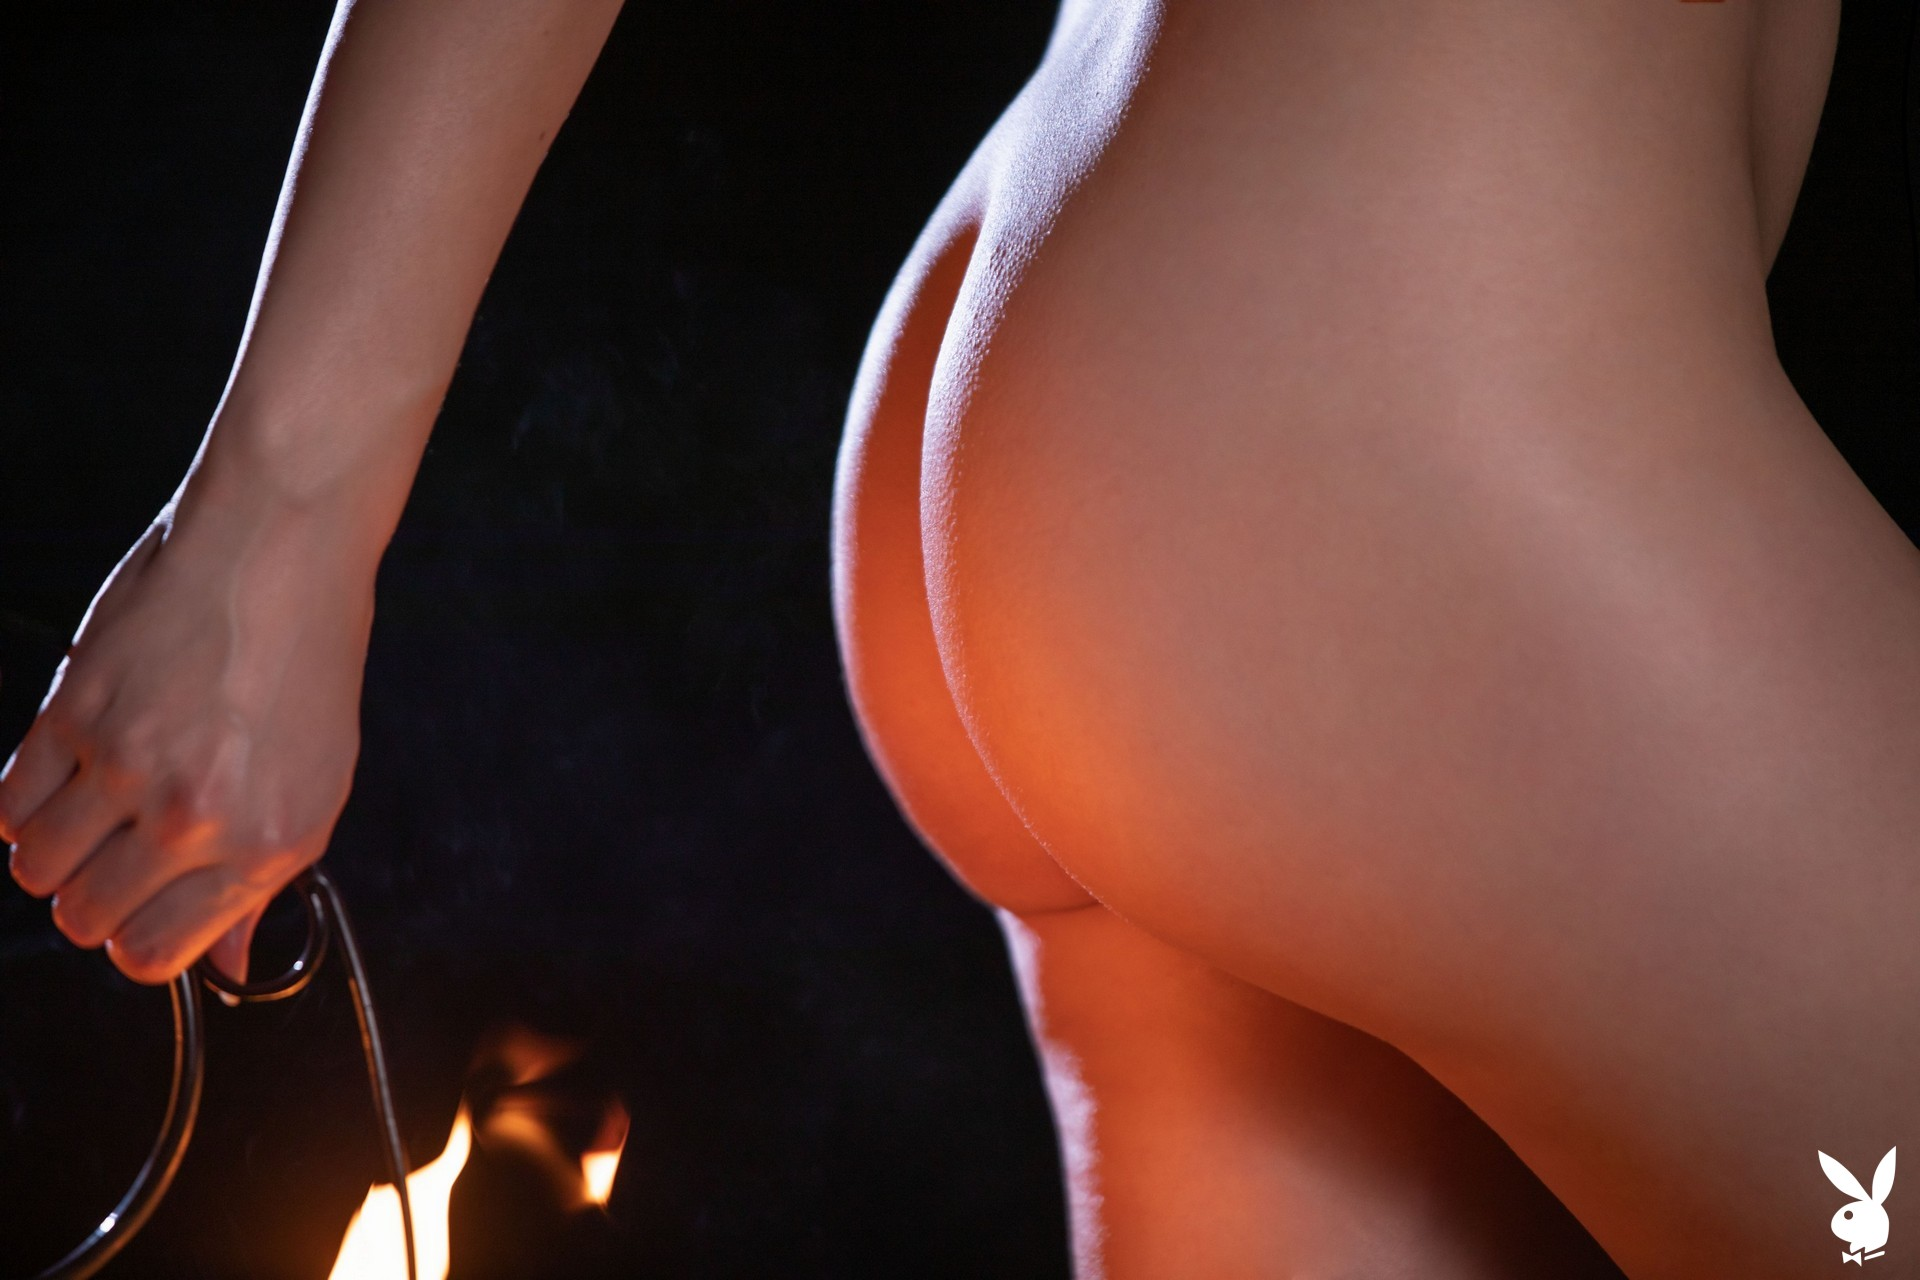 Elilith Noir In Playing With Fire Playboy Plus (28)